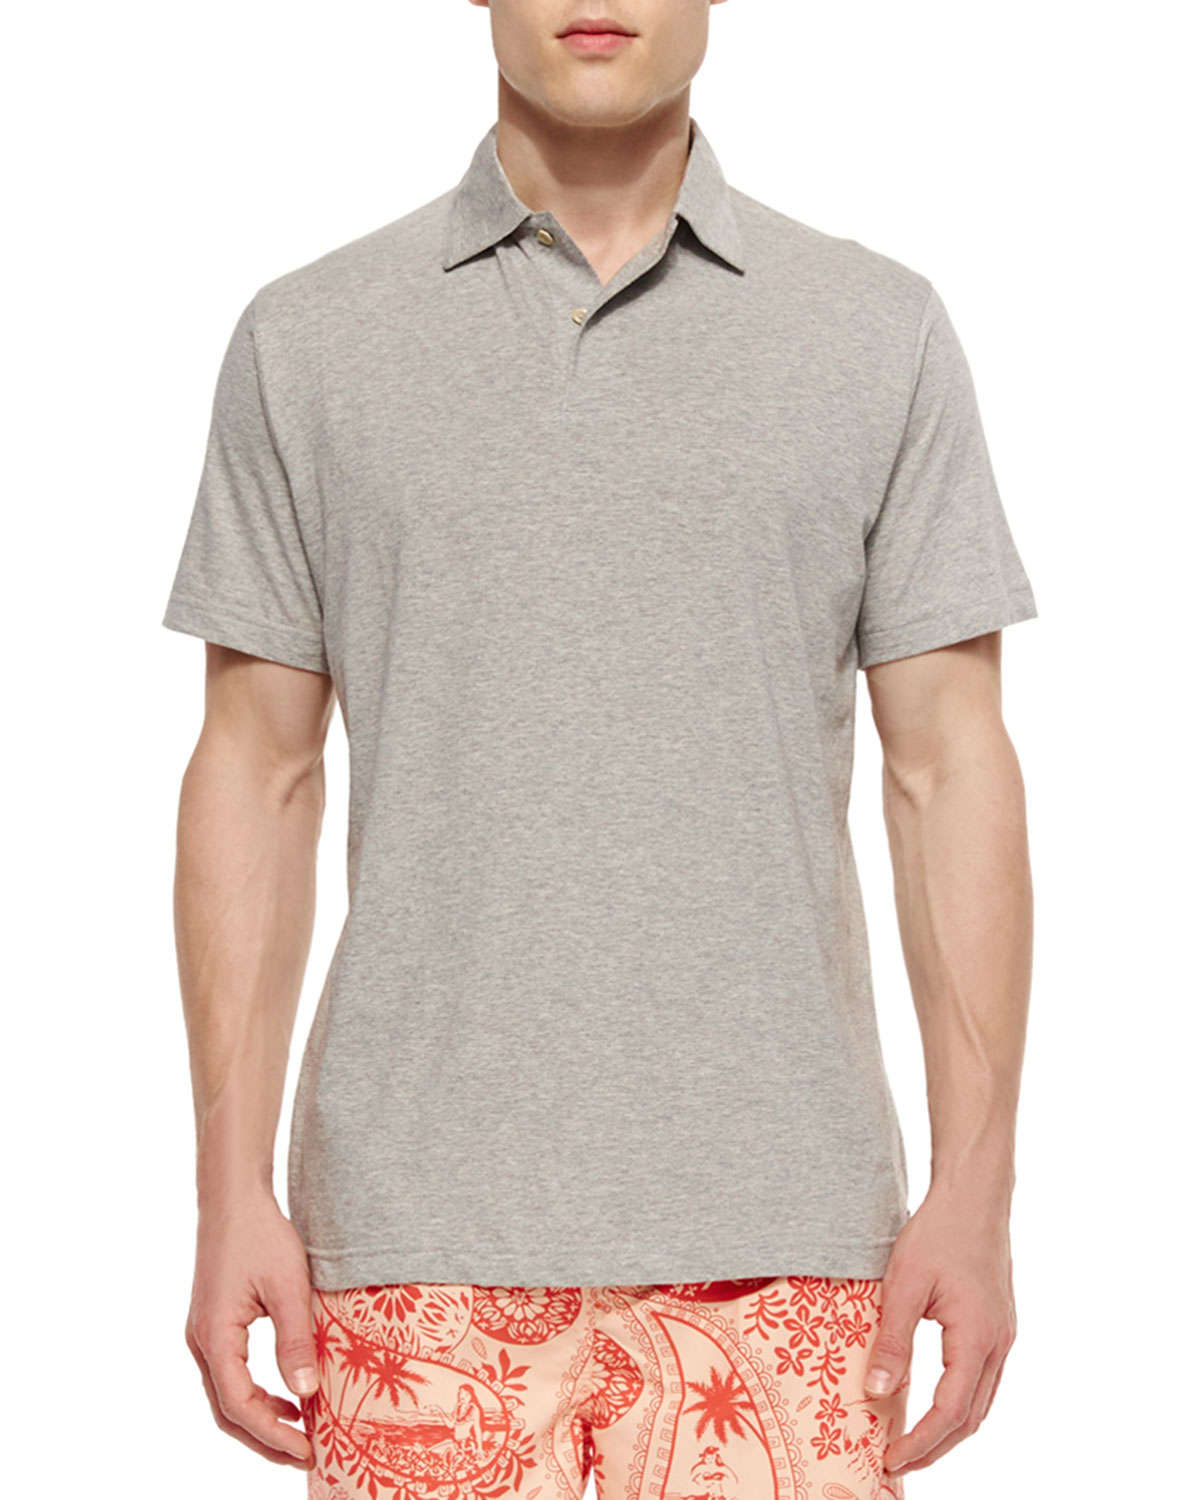 Peter millar seaside wash solid polo shirt in gray for men for Peter millar polo shirts